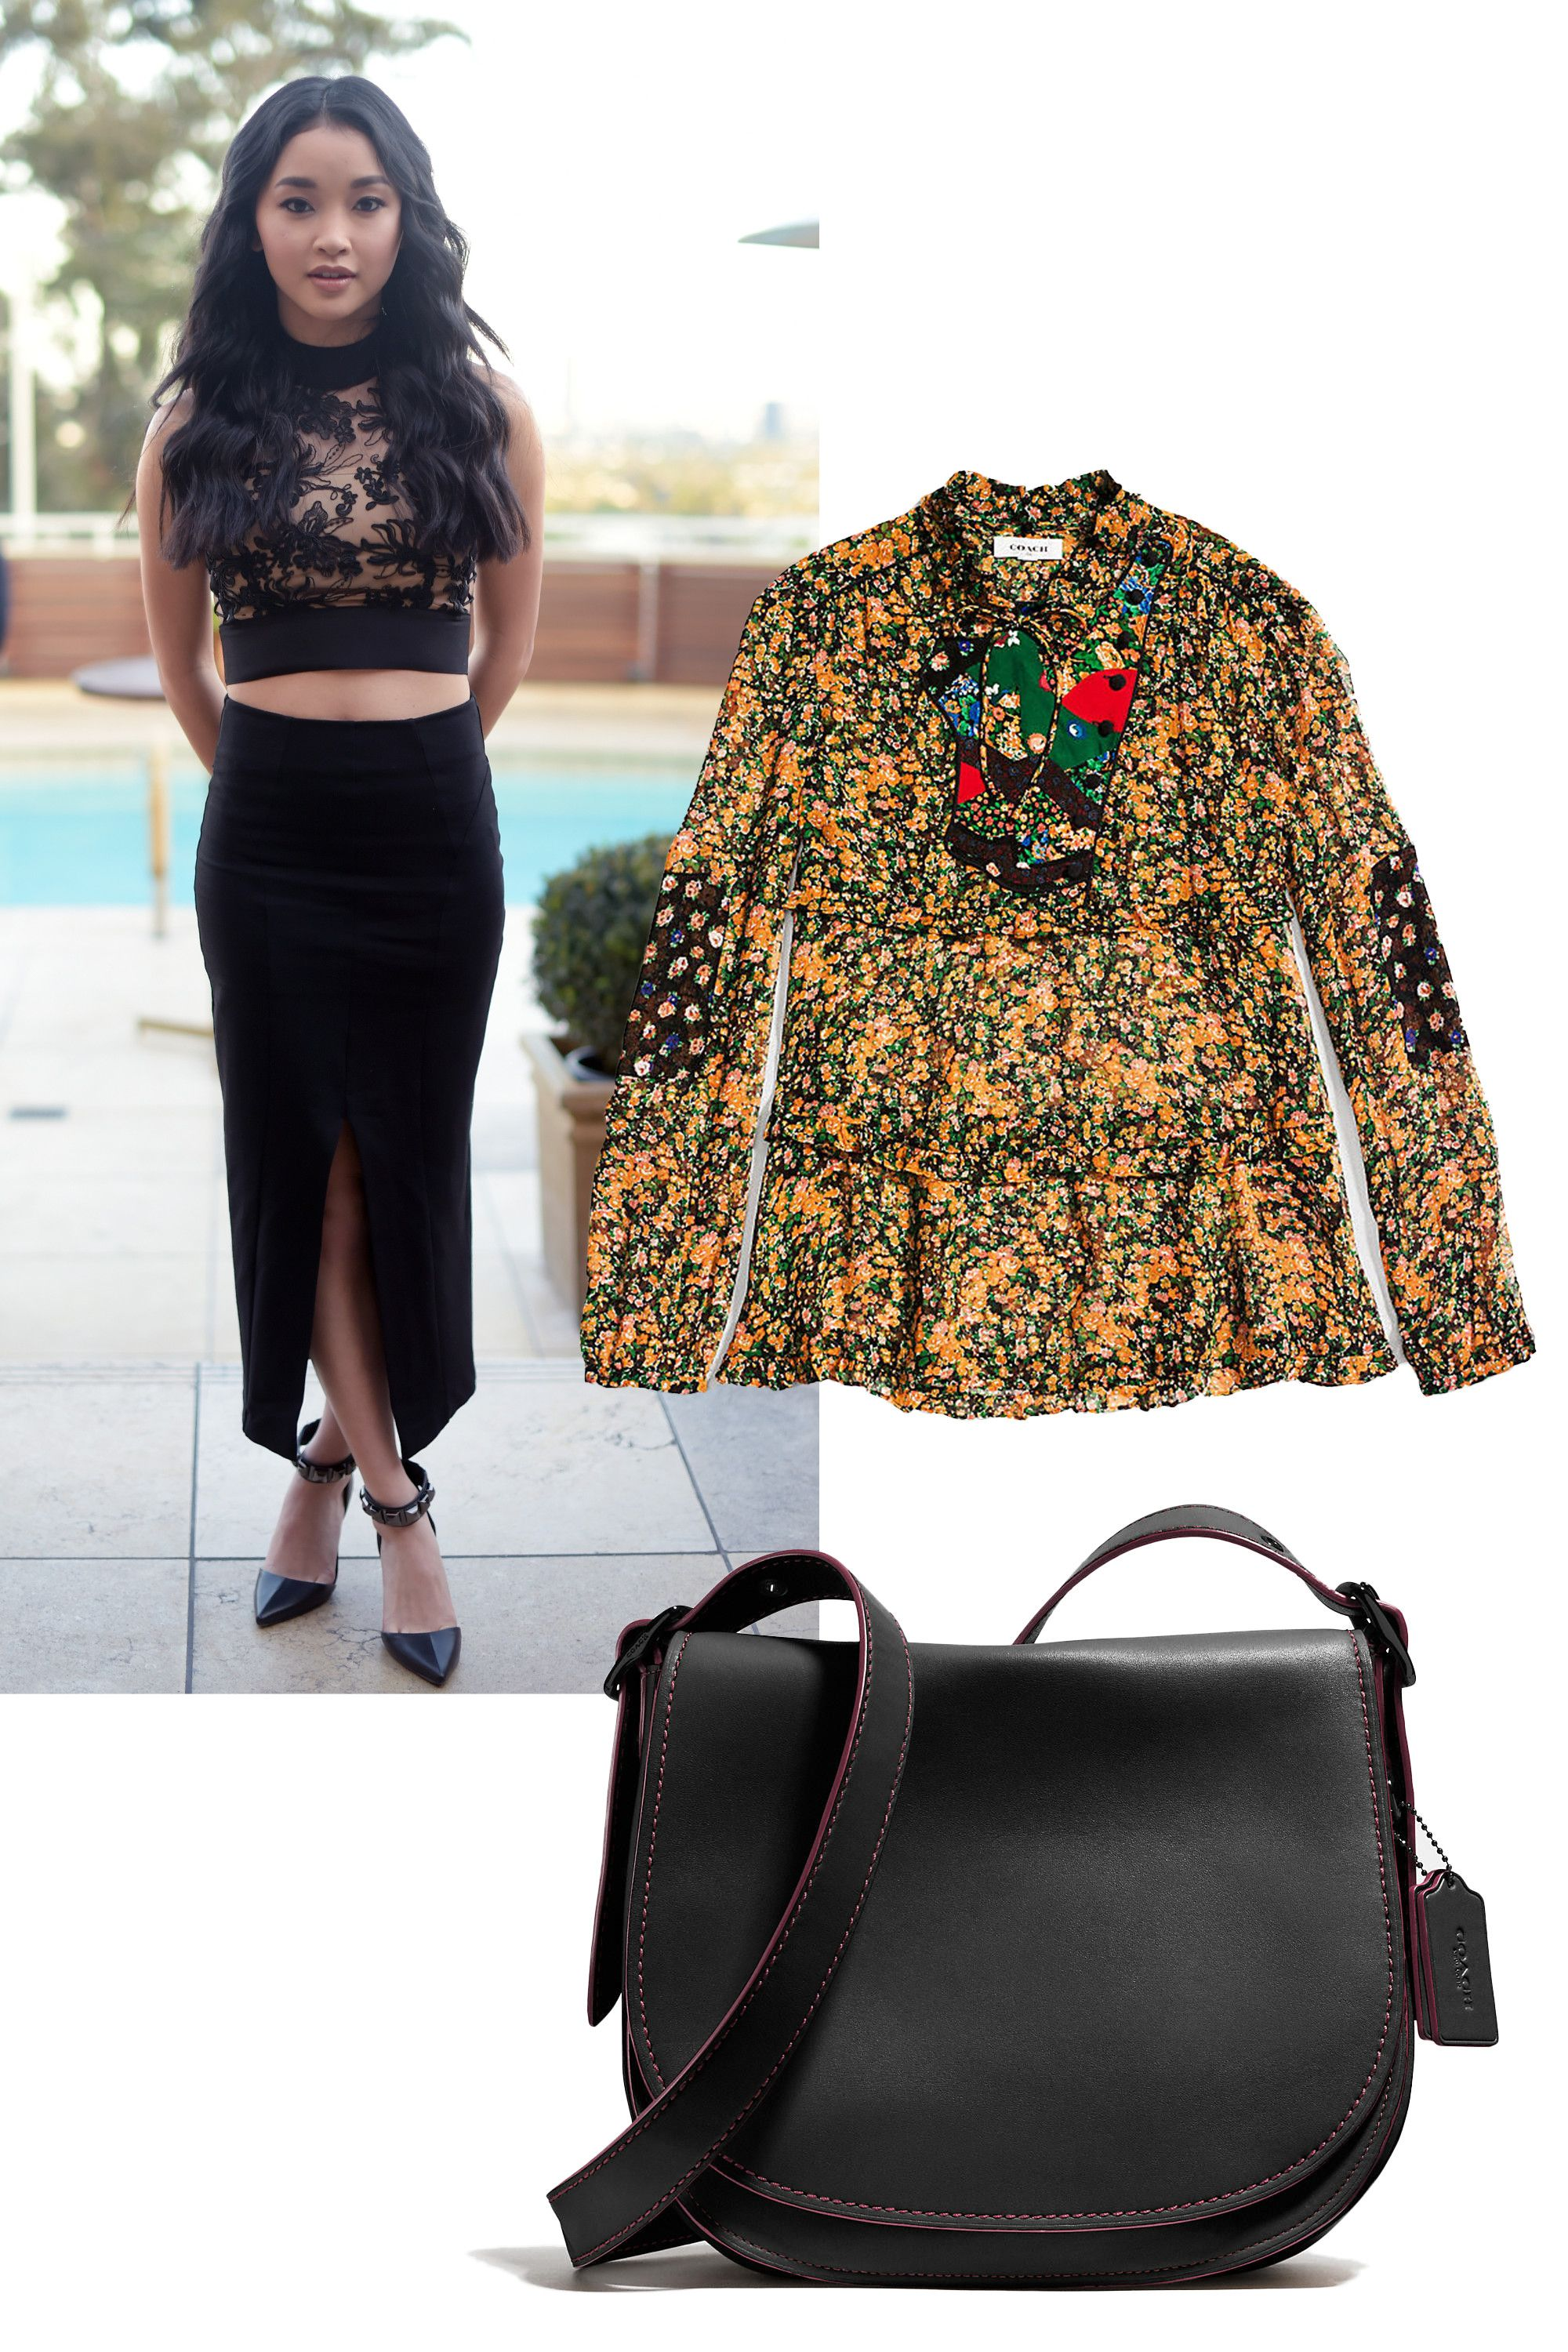 """<p>Throw a summer-y blouse over your crop top to make it more office-appropriate, add in a casual cross body messenger bag to take the edge off  those ultra-high shoes, and BOOM—you're ready for that 10:00 am meeting with the boss. </p><p><em><br></em> </p><p><em>Coach Side Opening Blouse With Applique, $450, <a rel=""""noskim"""" href=""""http://www.coach.com/coach-designer-tops-side-opening-blouse-with-applique/86681.html?CID=D_B_MRC_10794"""" target=""""_blank"""">coach.com</a>; Coach Saddle Bag, $550, </em><a rel=""""noskim"""" href=""""http://www.coach.com/coach-designer-crossbody-saddle-bag-in-glovetanned-leather/37200.html?dwvar_color=MWC1A&CID=D_B_MRC_10795"""" target=""""_blank""""><em>coach.com</em></a></p>"""